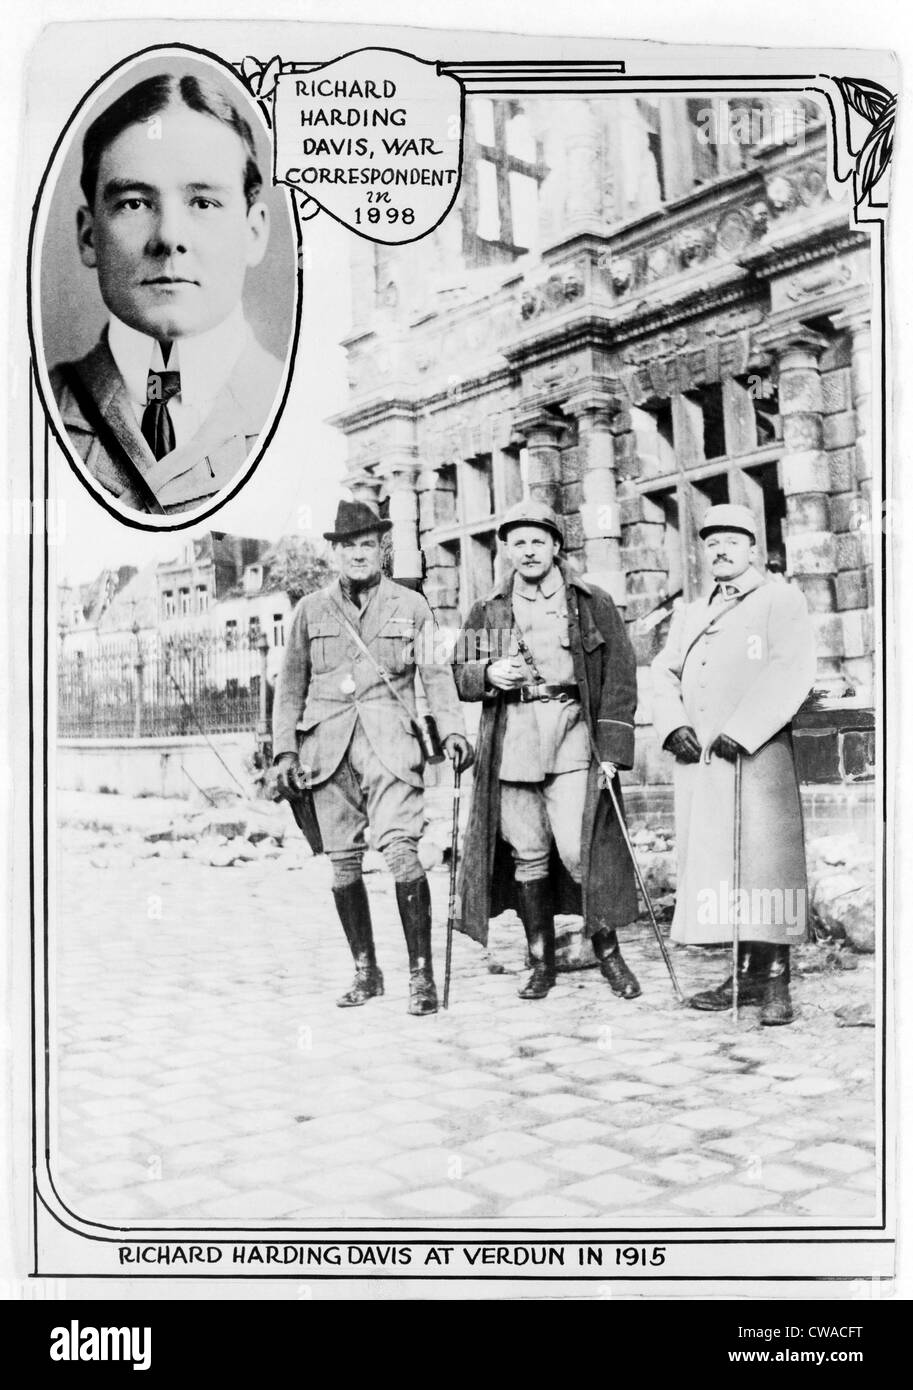 Richard Harding Davis (1864-1916), American journalist at Verdun, with two other men, in 1915, and insert of head - Stock Image